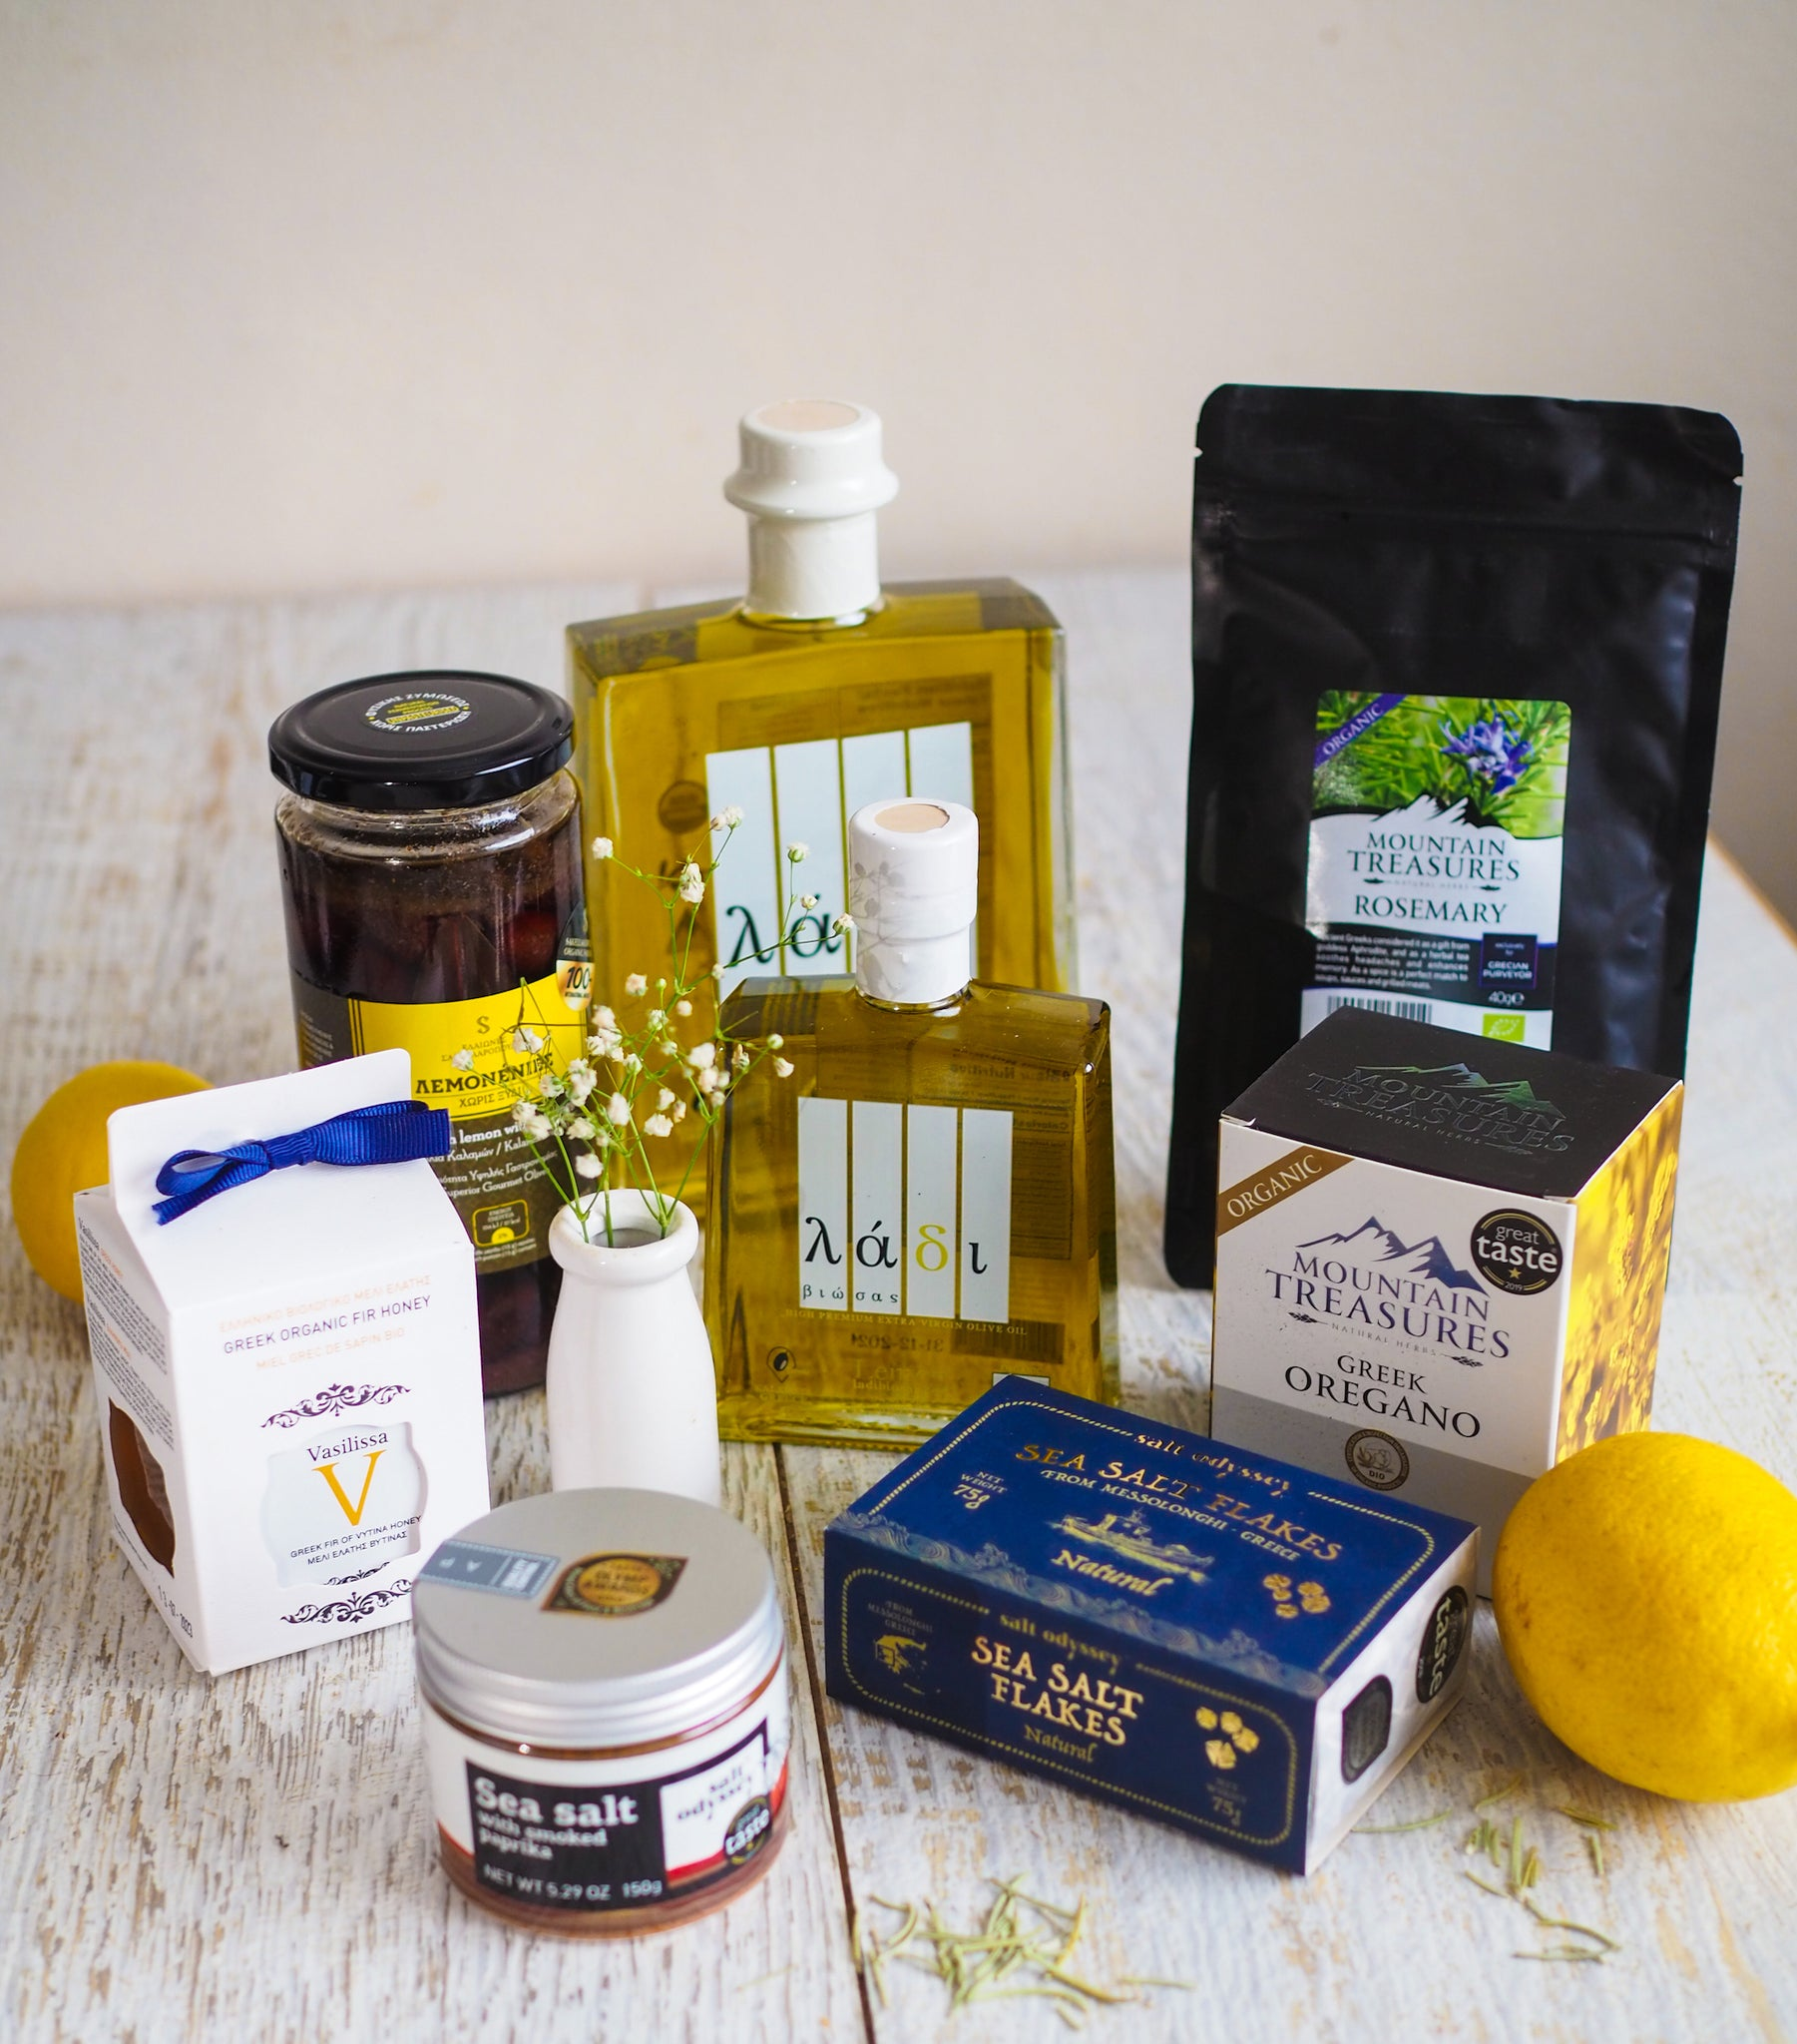 Quality cooking ingredients and gourmet foods by gourmet grocer Grecian Purveyor. Best gourmet grocery shopping online in Australia.